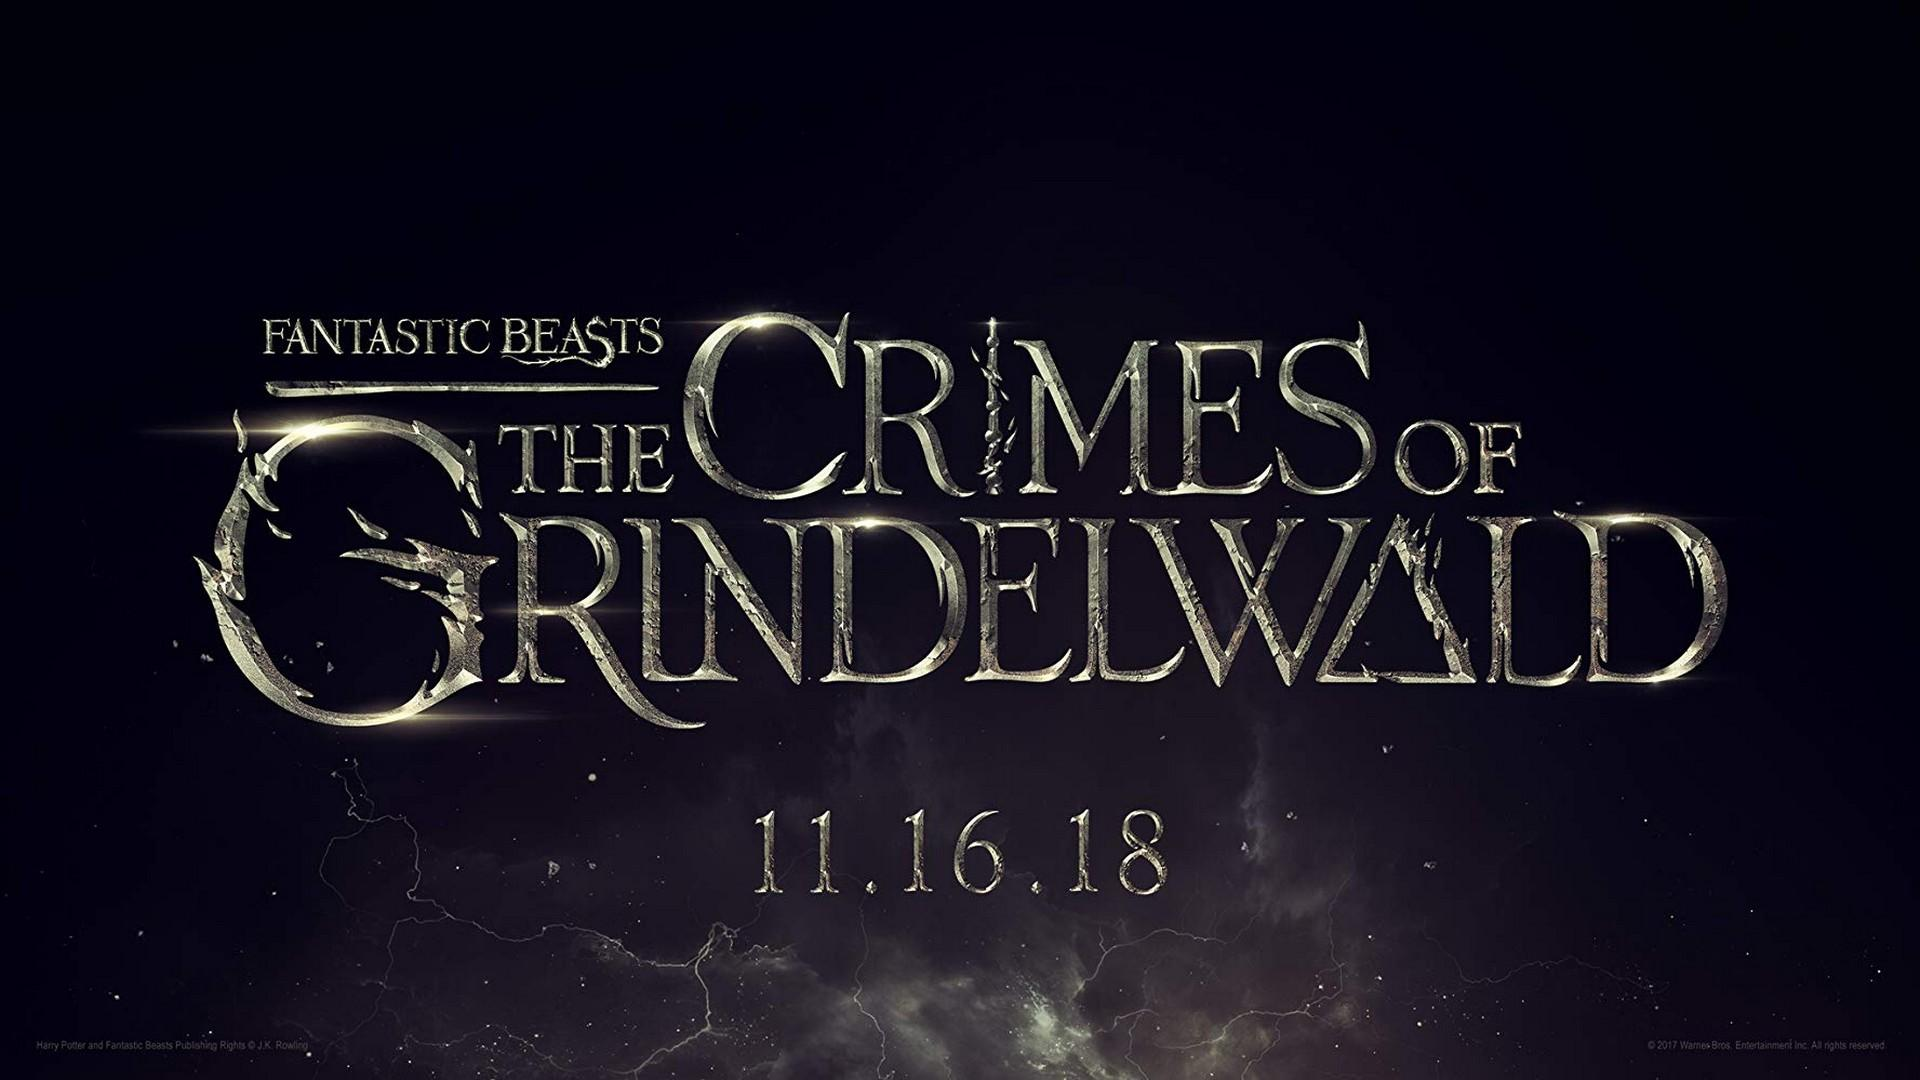 Fantastic Beasts The Crimes of Grindelwald 2018 Poster Wallpaper ...